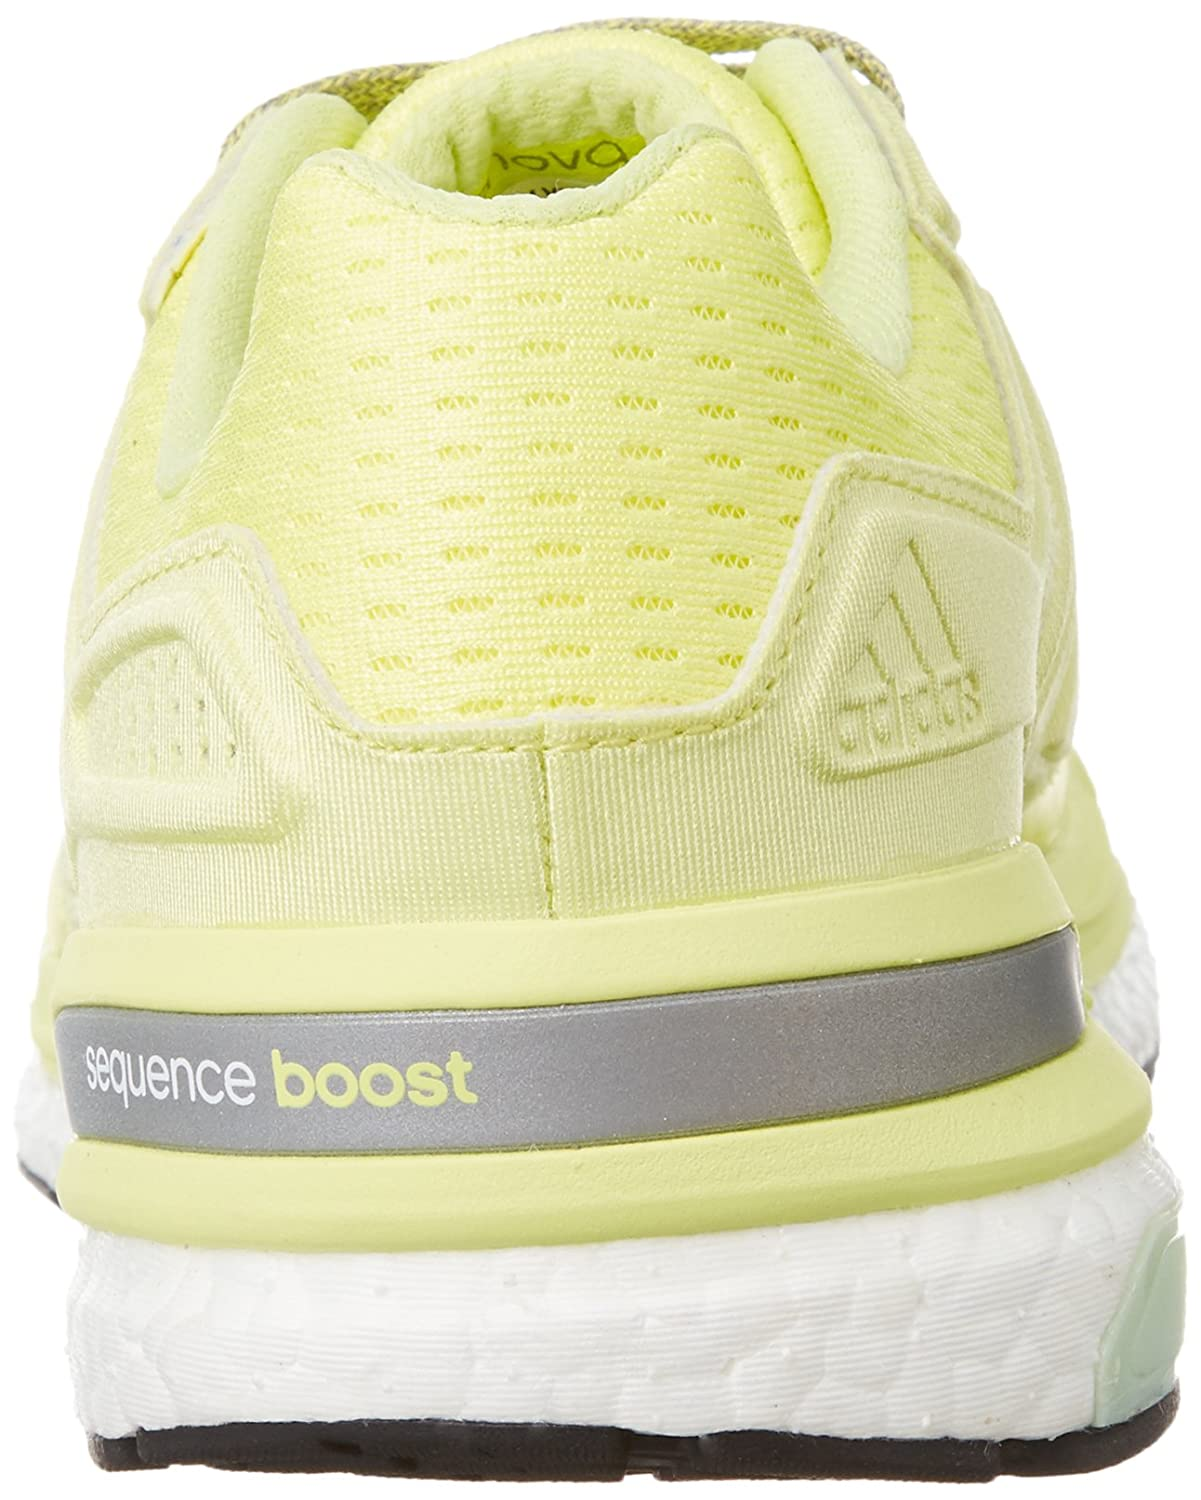 559aa27c4877e adidas Women s Supernova Sequence Boost 8 Training Running Shoes   Amazon.co.uk  Shoes   Bags